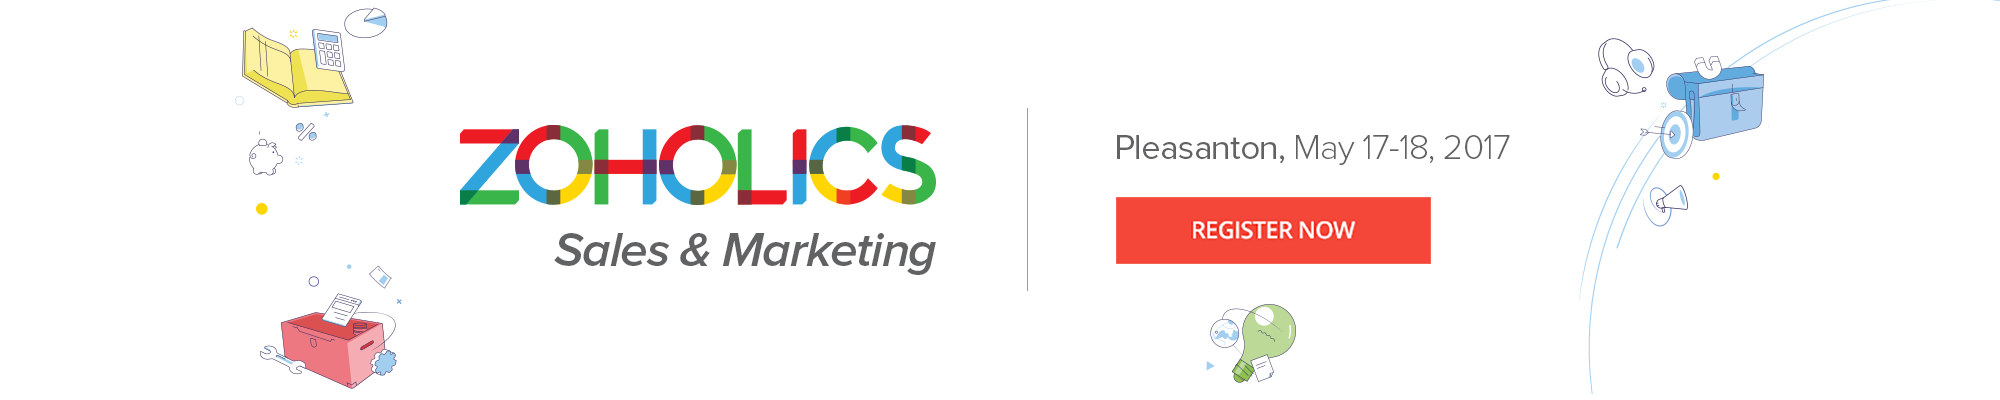 Zoholics Sales and Marketing